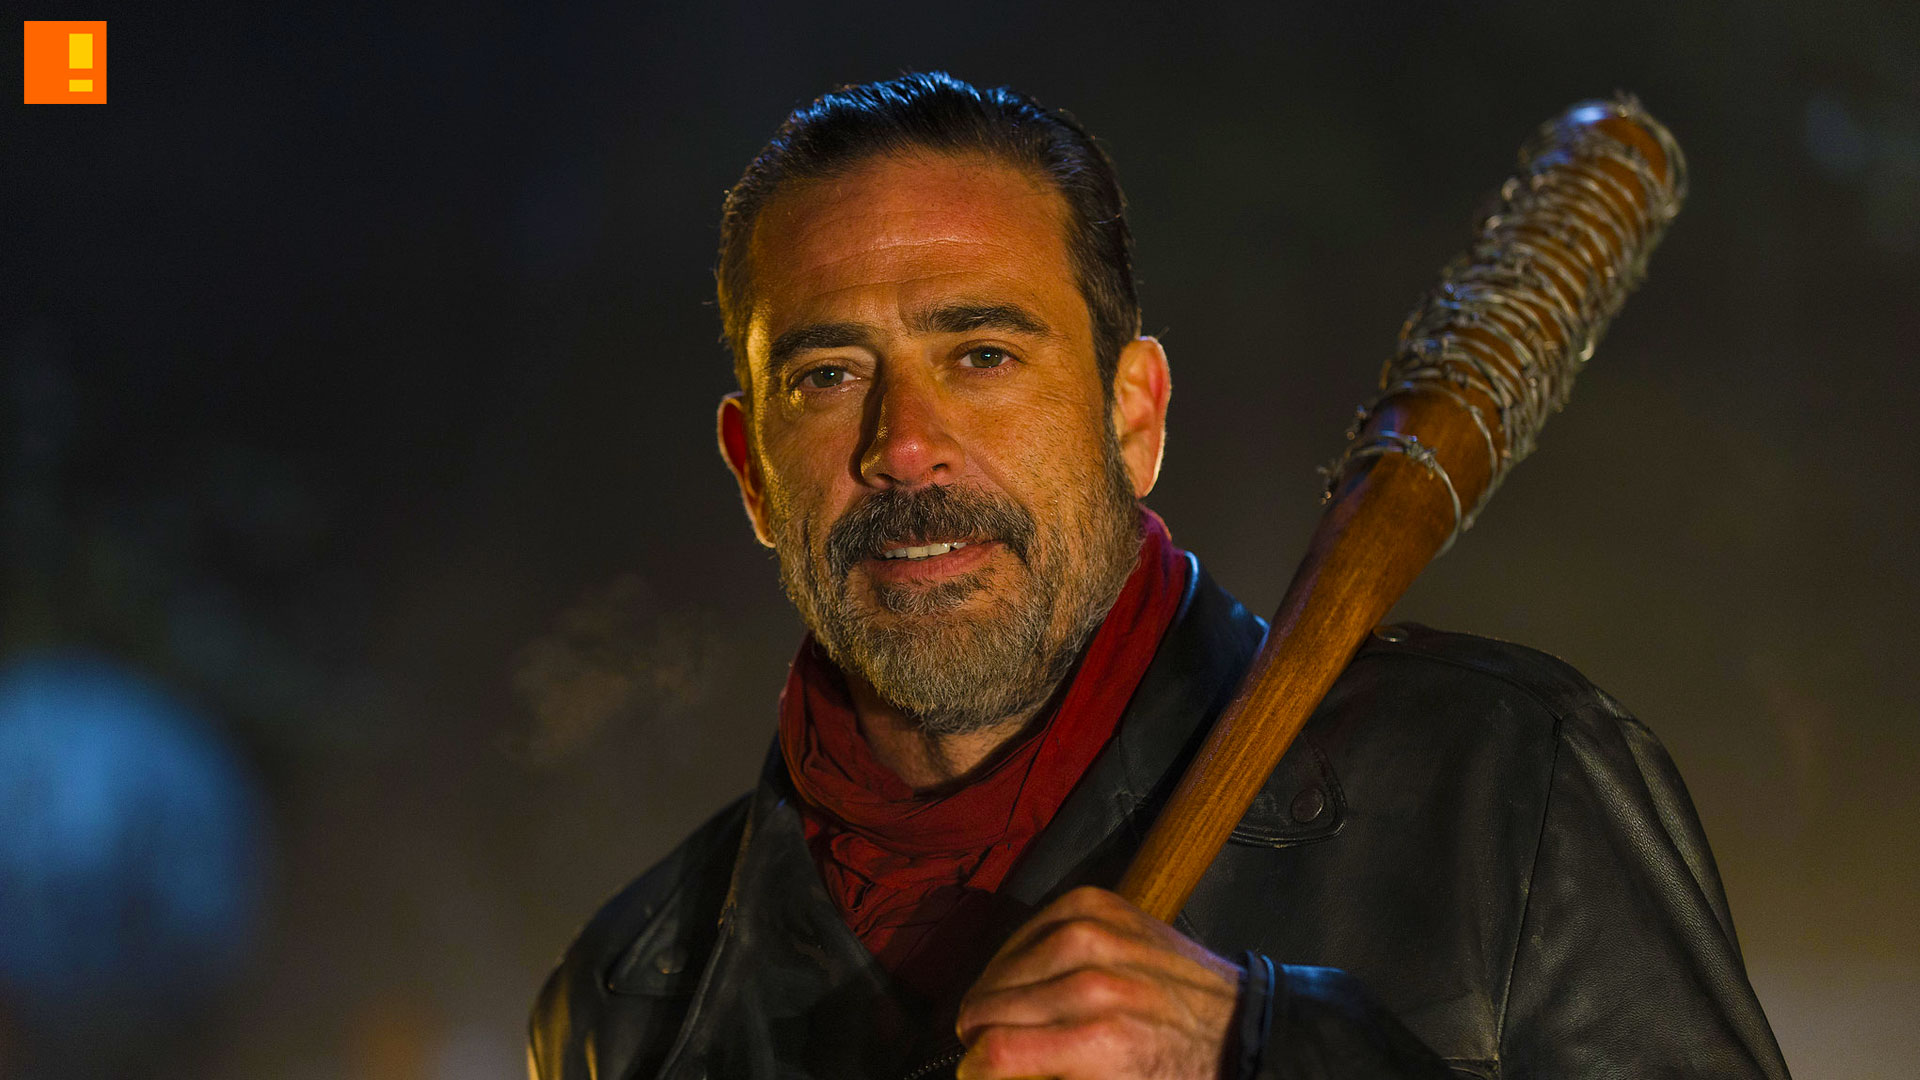 negan, episode 616, the walking dead, season 6, entertainment on tap, the action pixel